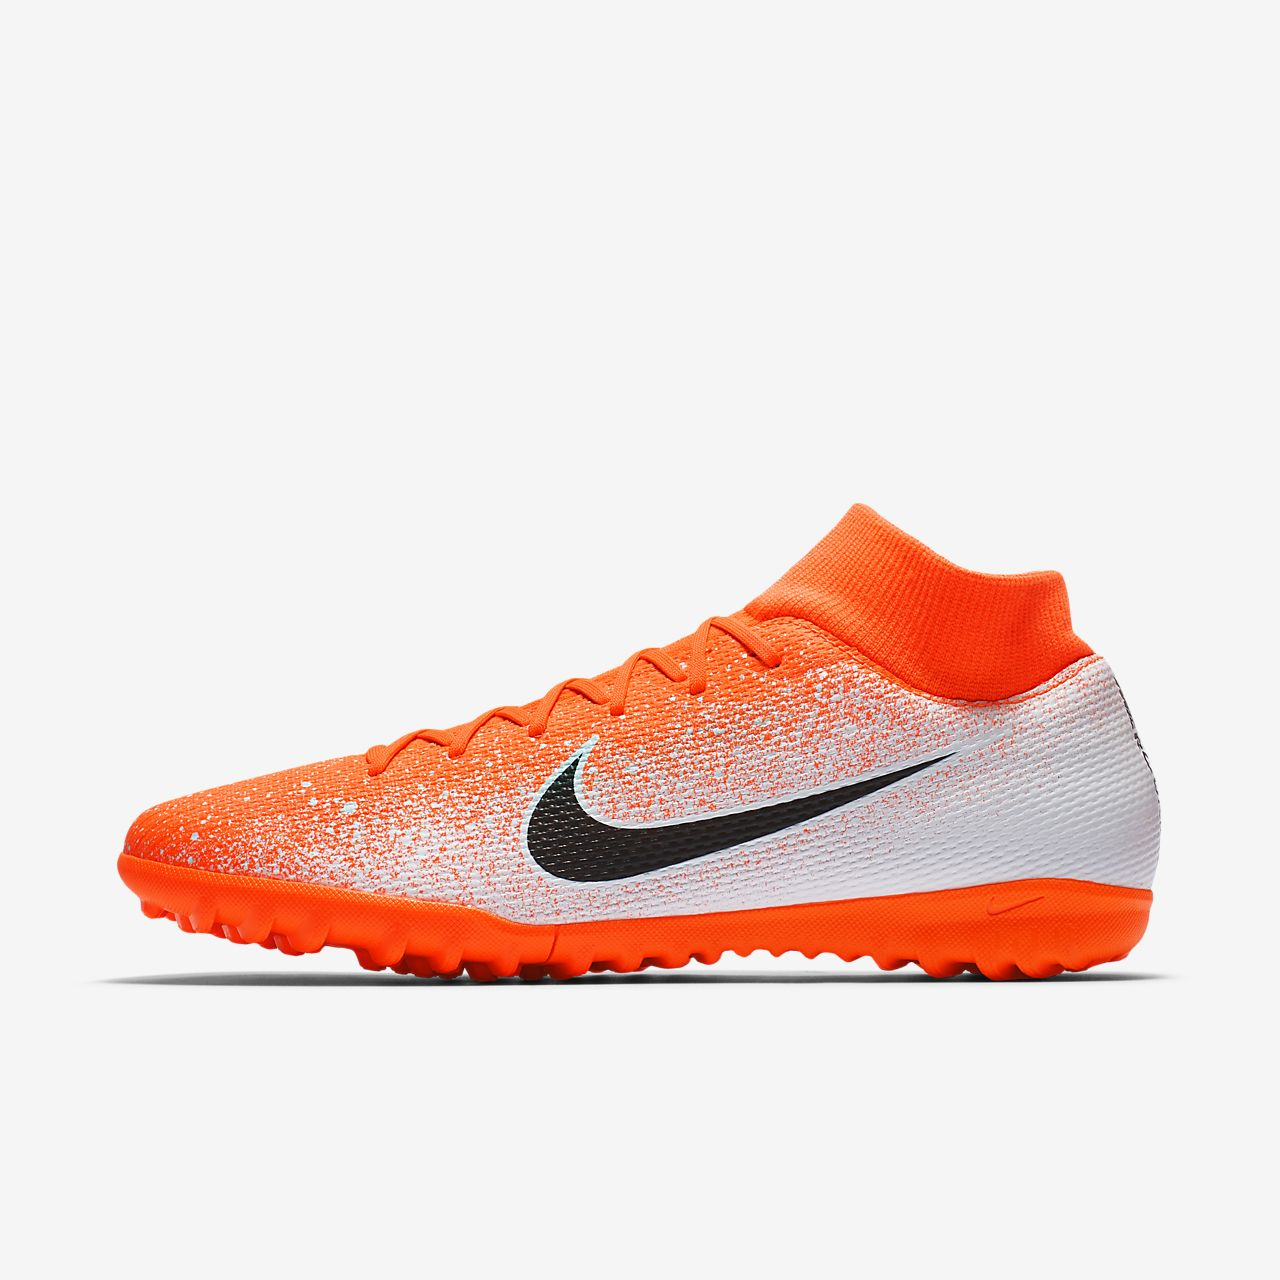 comprar online 25fdb 136cf Nike SuperflyX 6 Academy TF Turf Football Boot